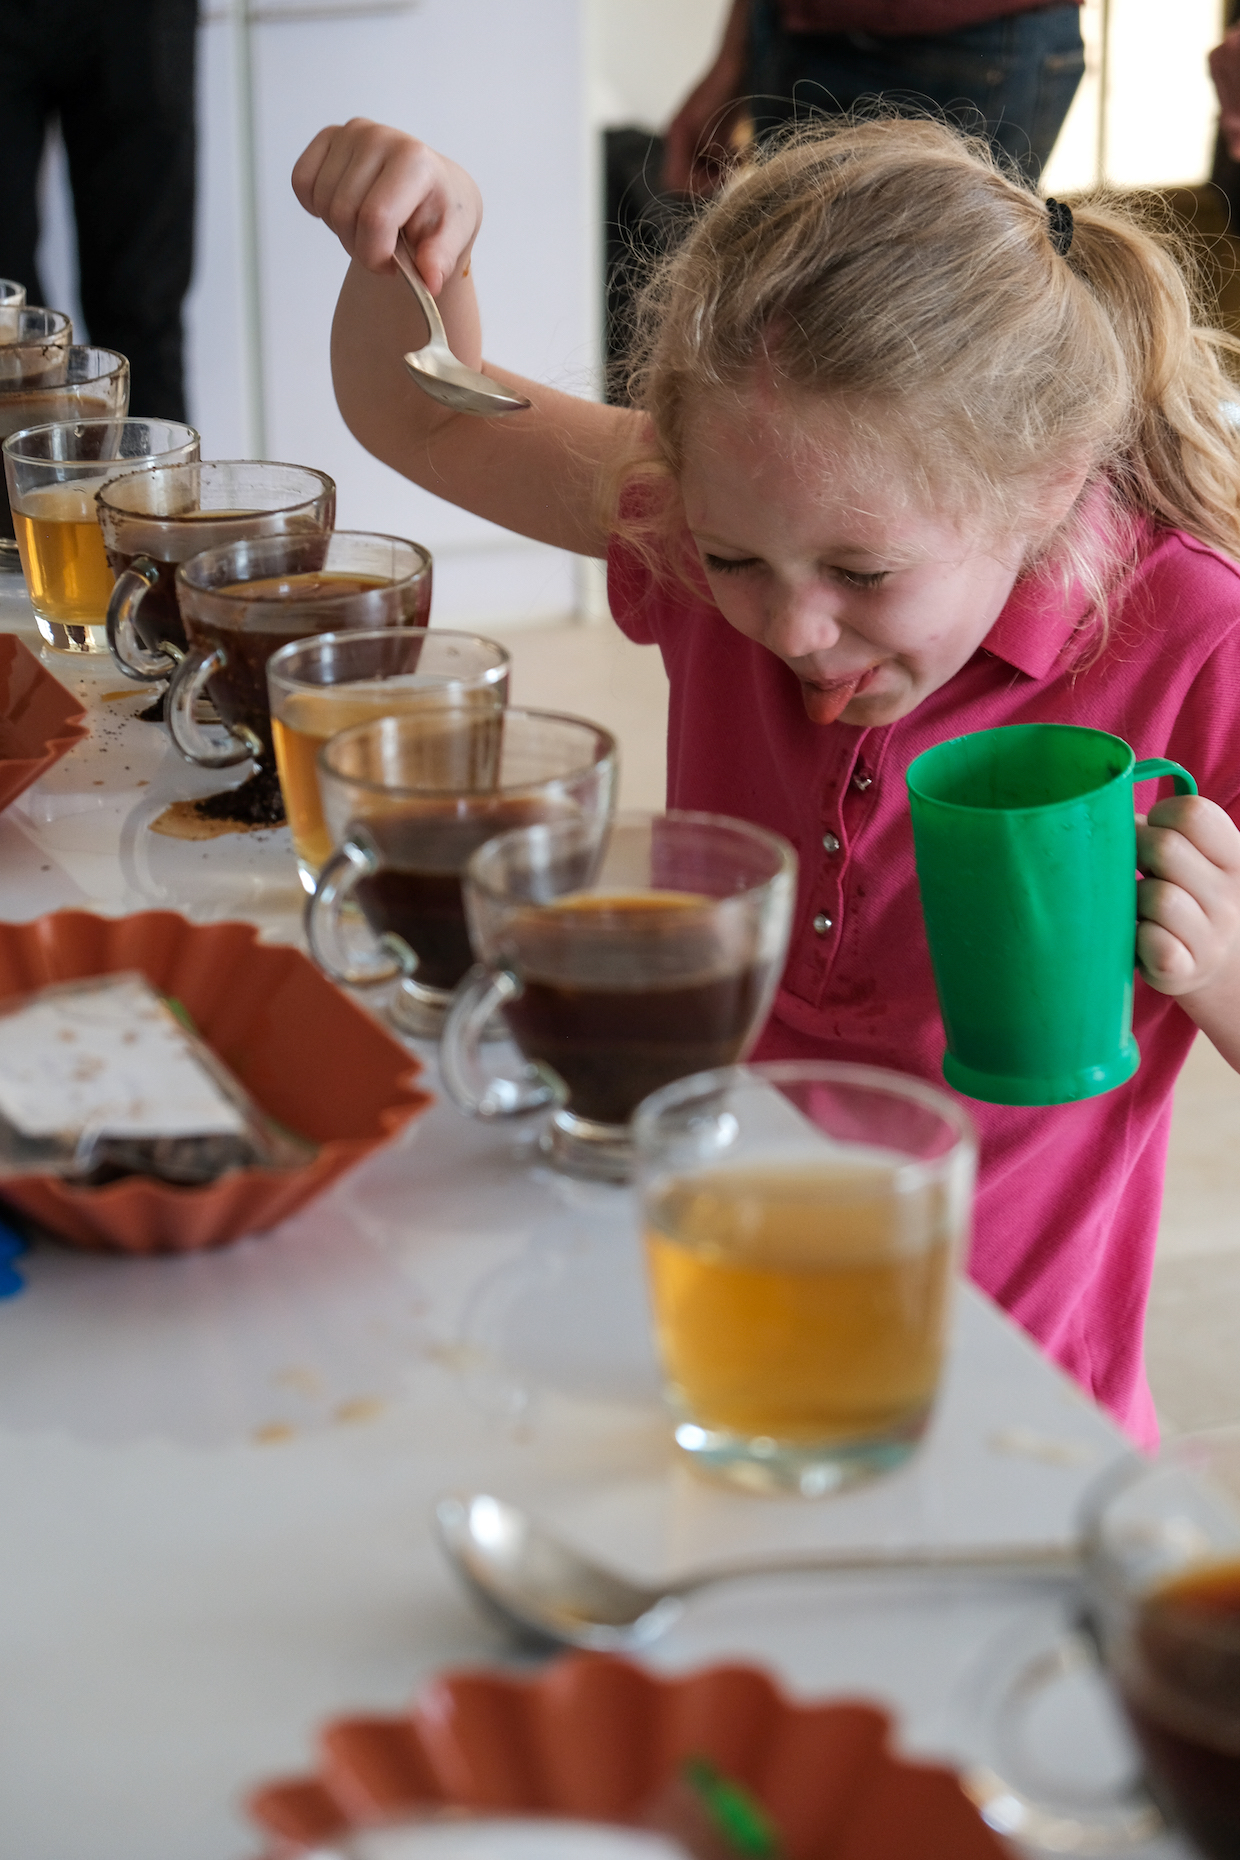 Eire cupping in Addis